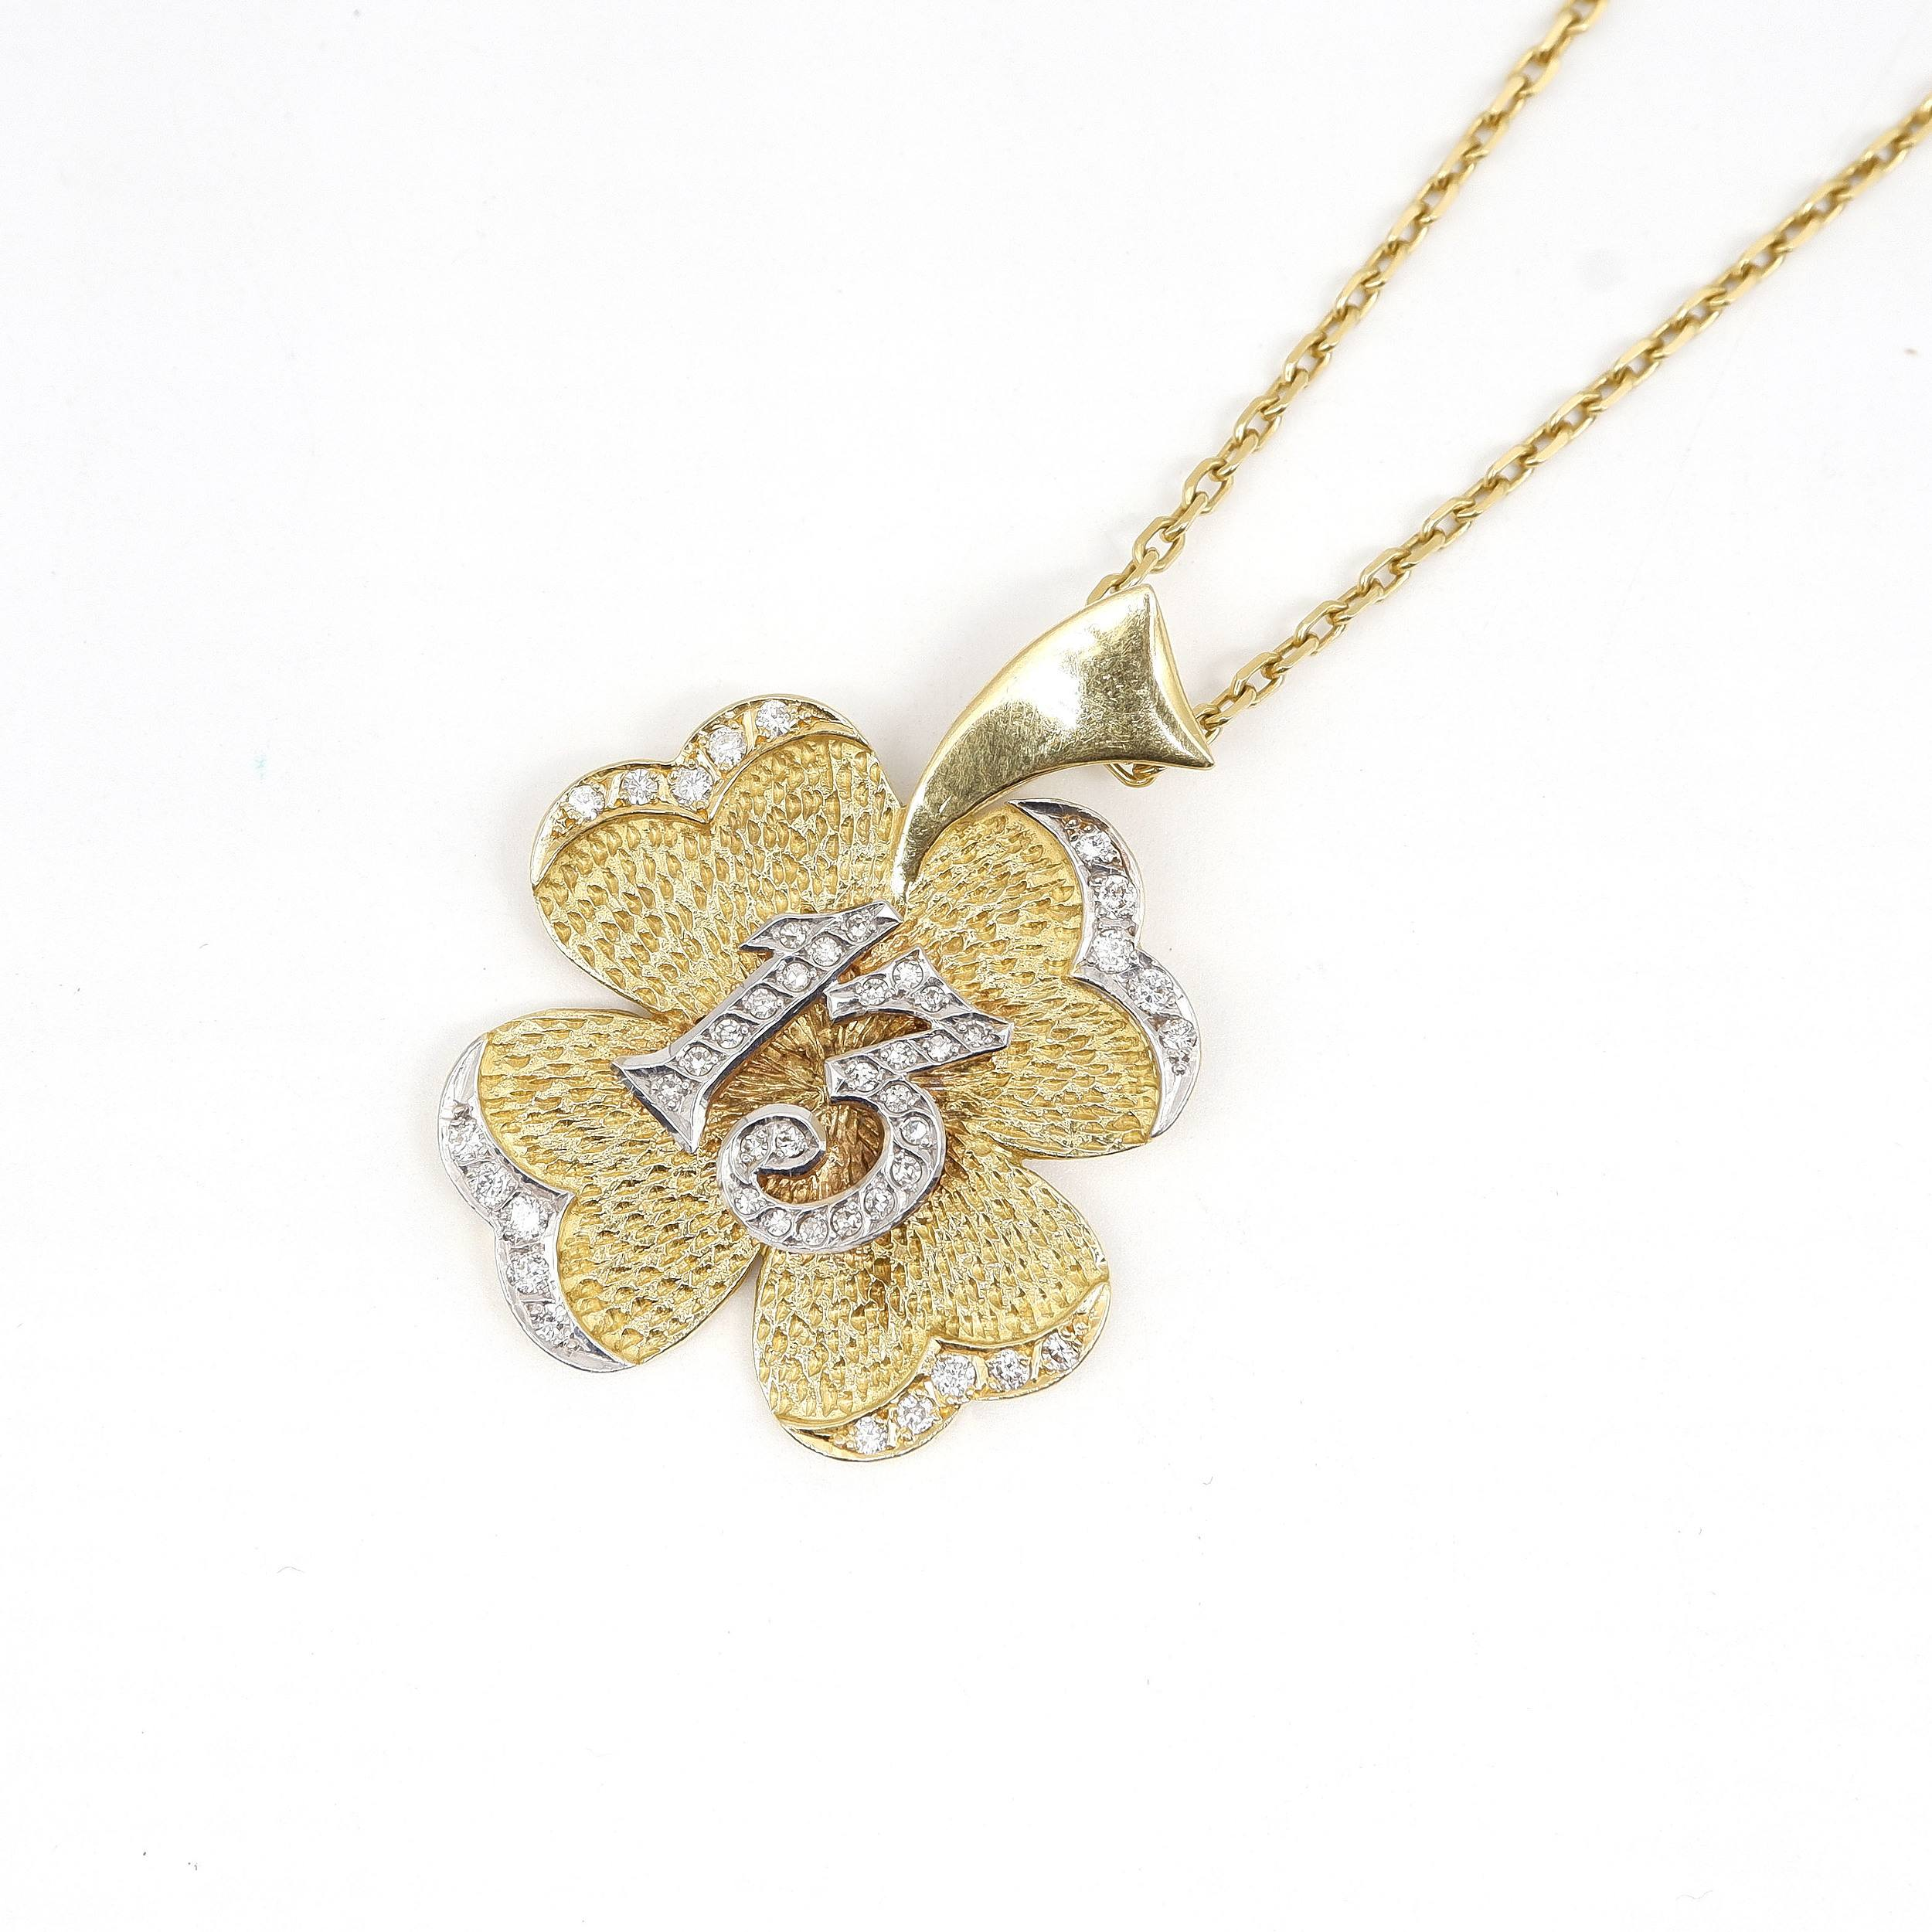 '18ct Yellow Gold Chain and Pendant, 26.8g'